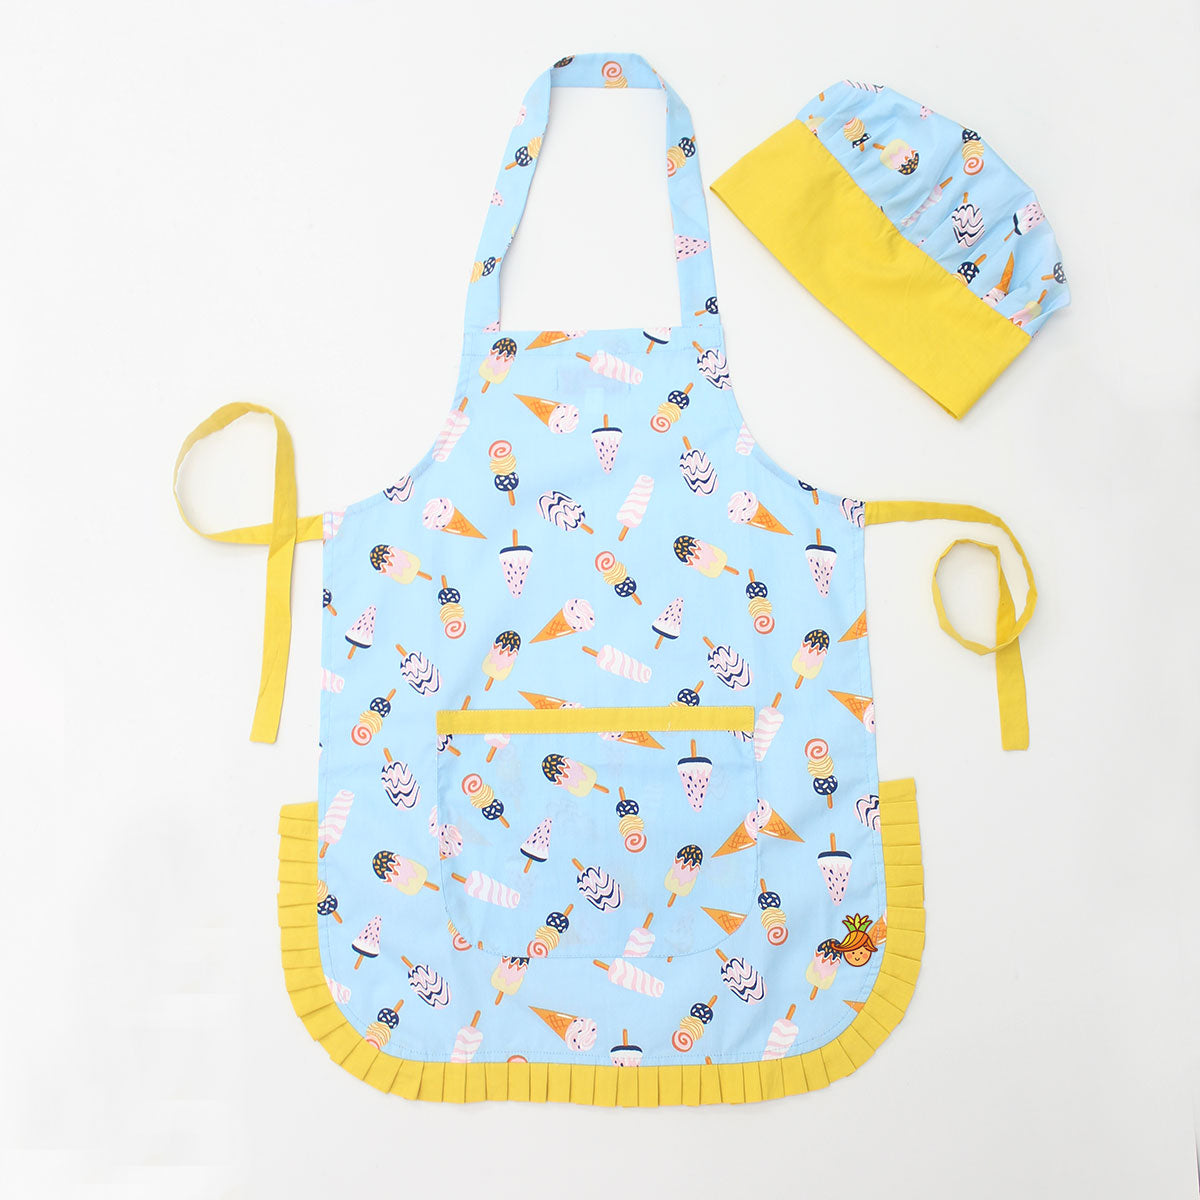 Frozen Dessert Printed Apron And Cap Set